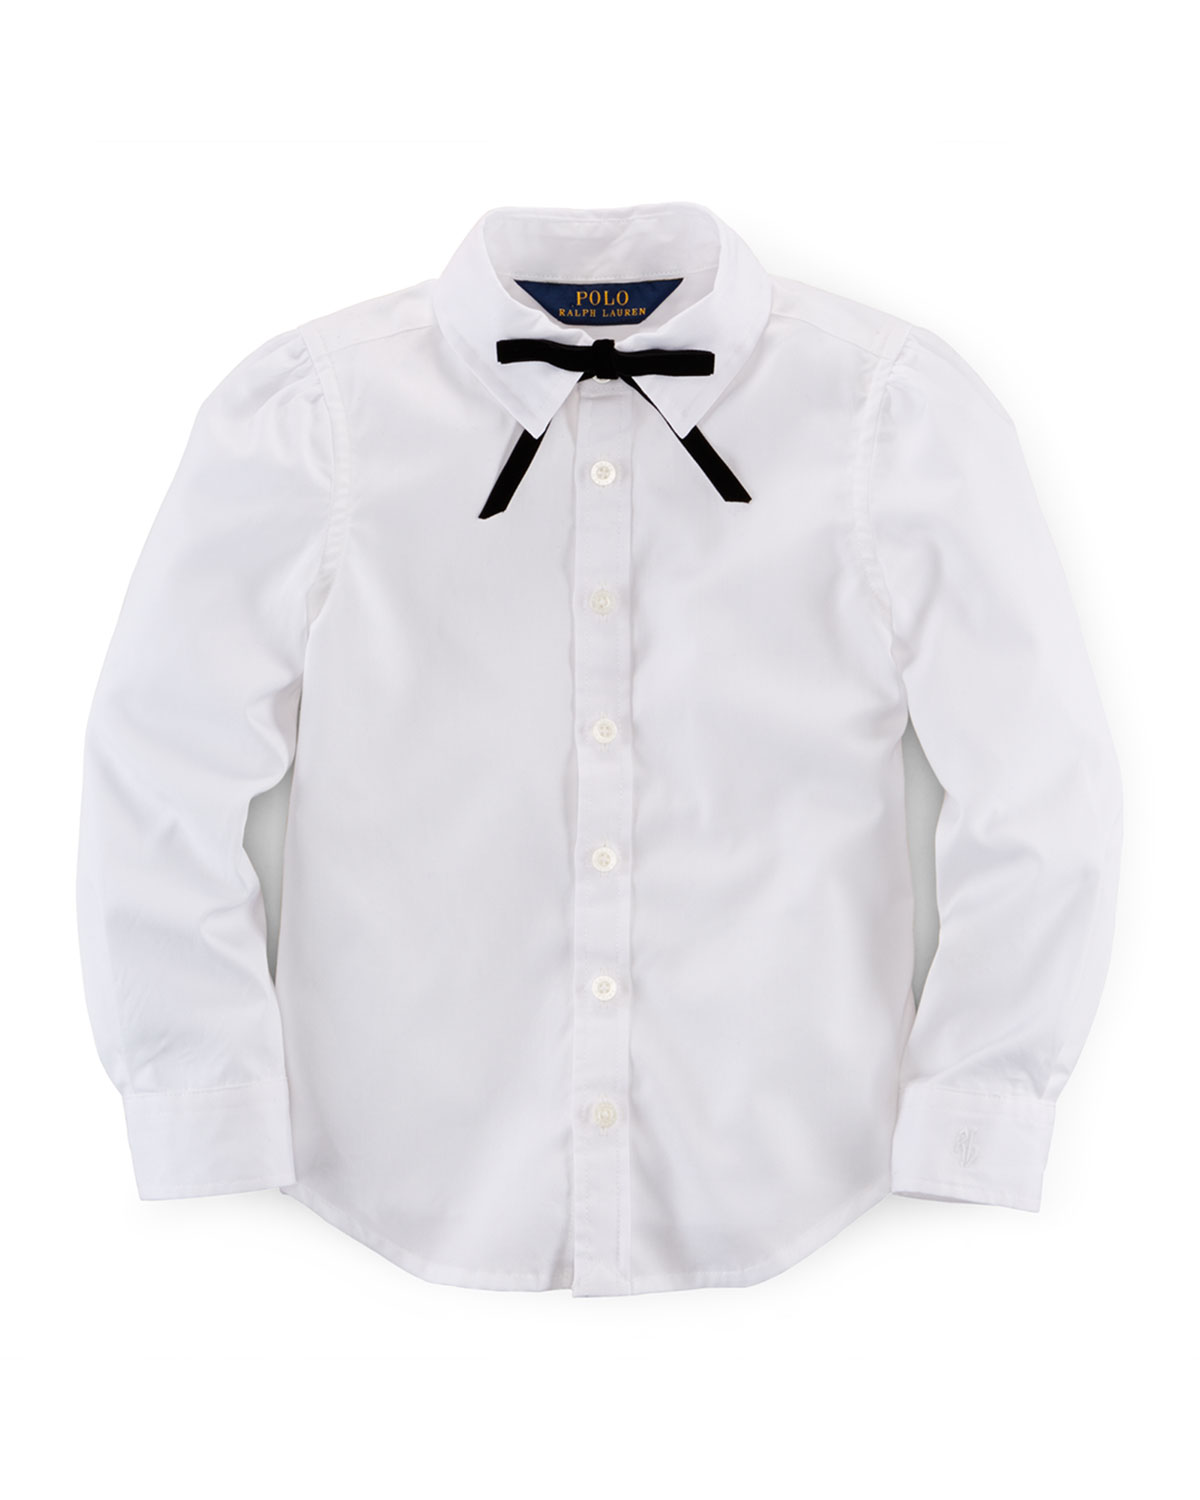 Cotton Broadcloth Shirt w/ Tie, White, Size 2T-6X